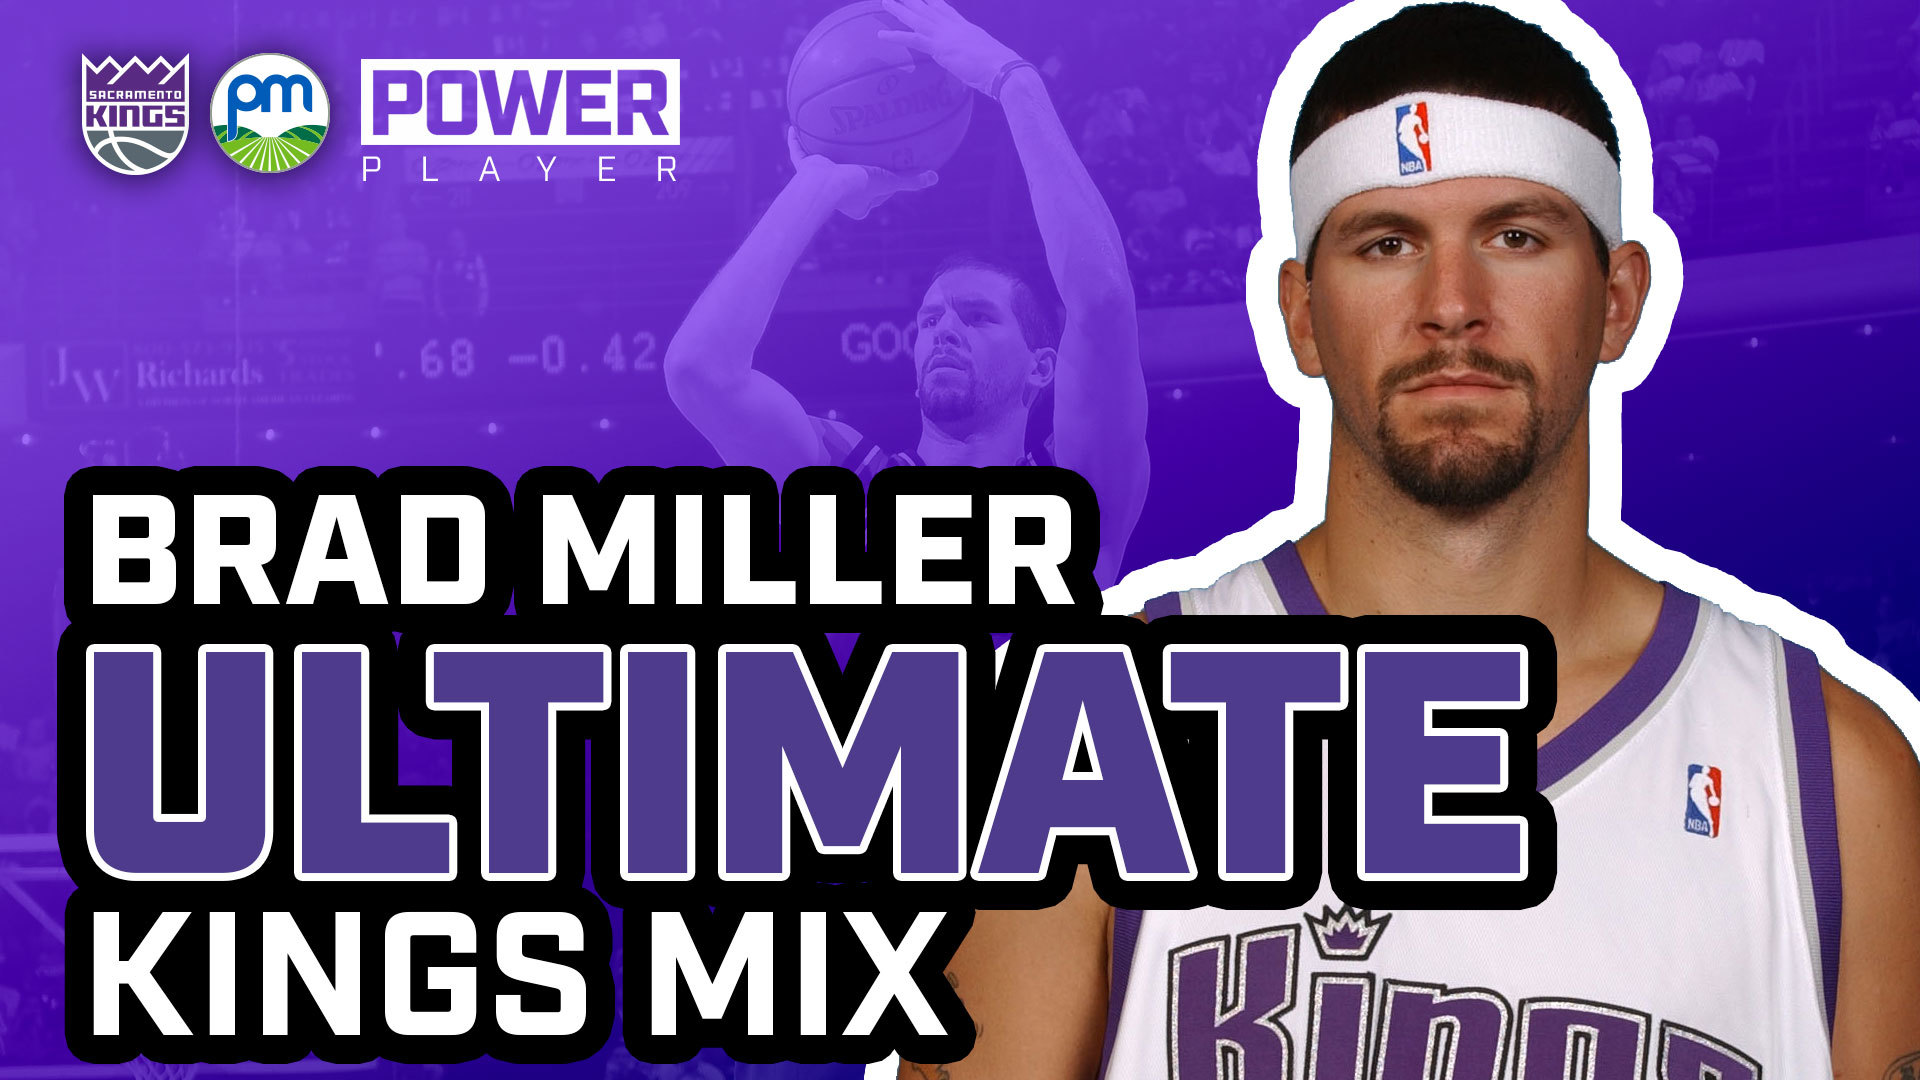 BRAD MILLER ULTIMATE KINGS MIX | Power Market Power Player